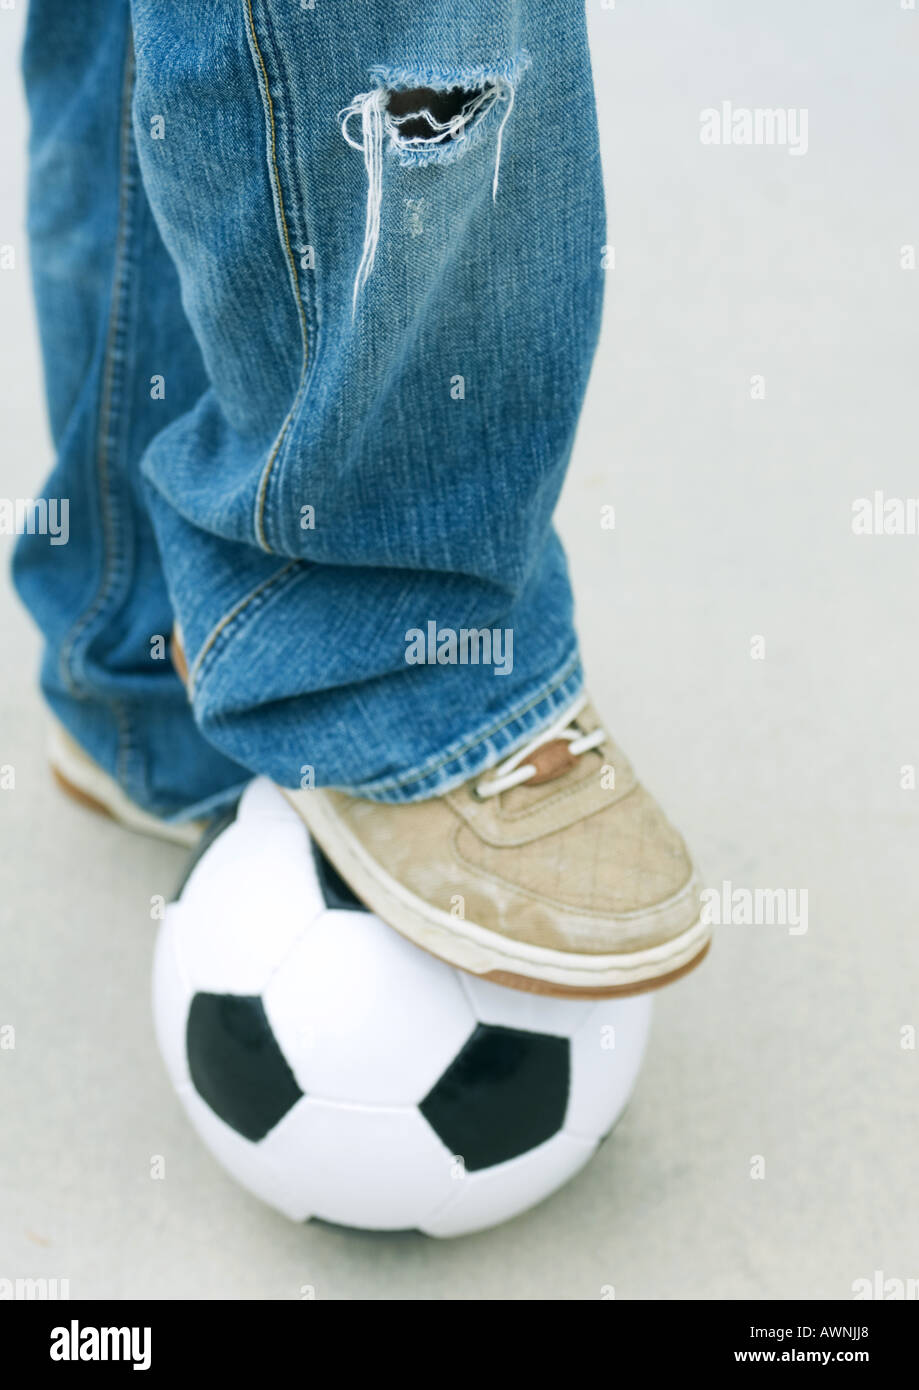 Boy resting foot on soccer ball, close-up Stock Photo